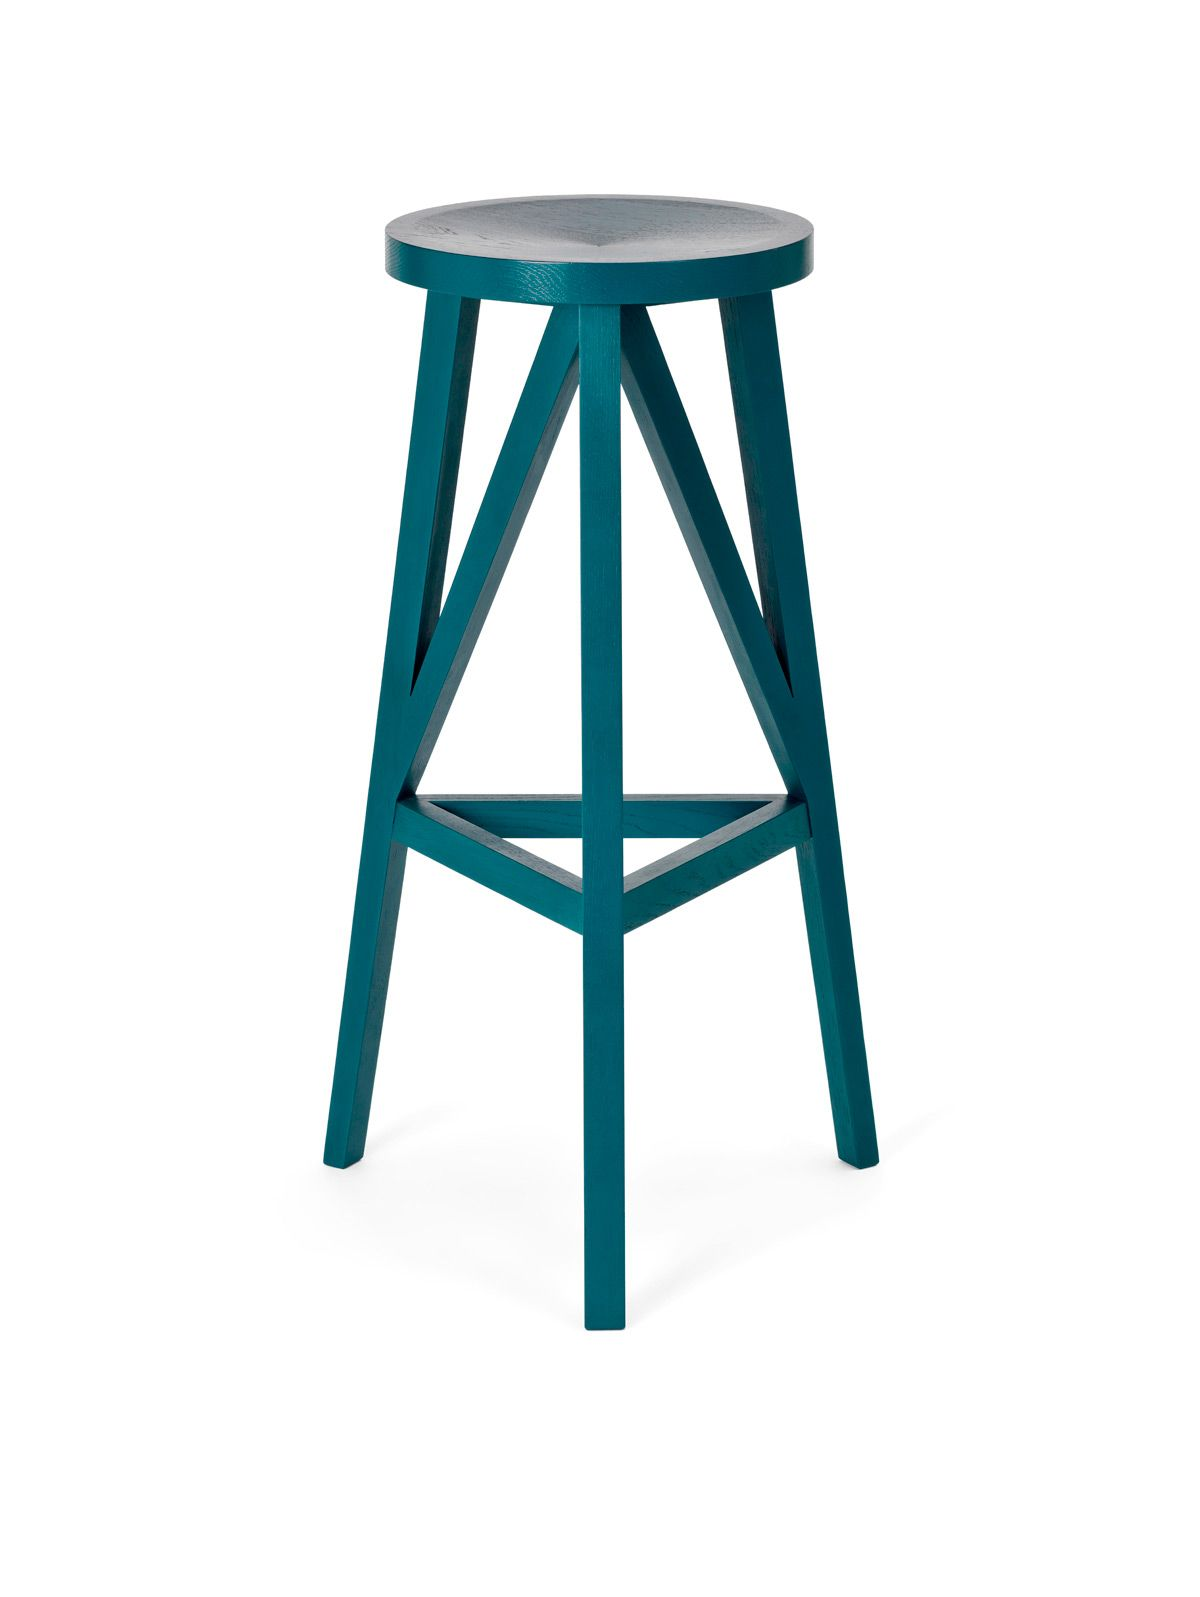 JL4 Faber Bar Stool by Loehr. ocean blue, 780mm seat height for a bar counter.